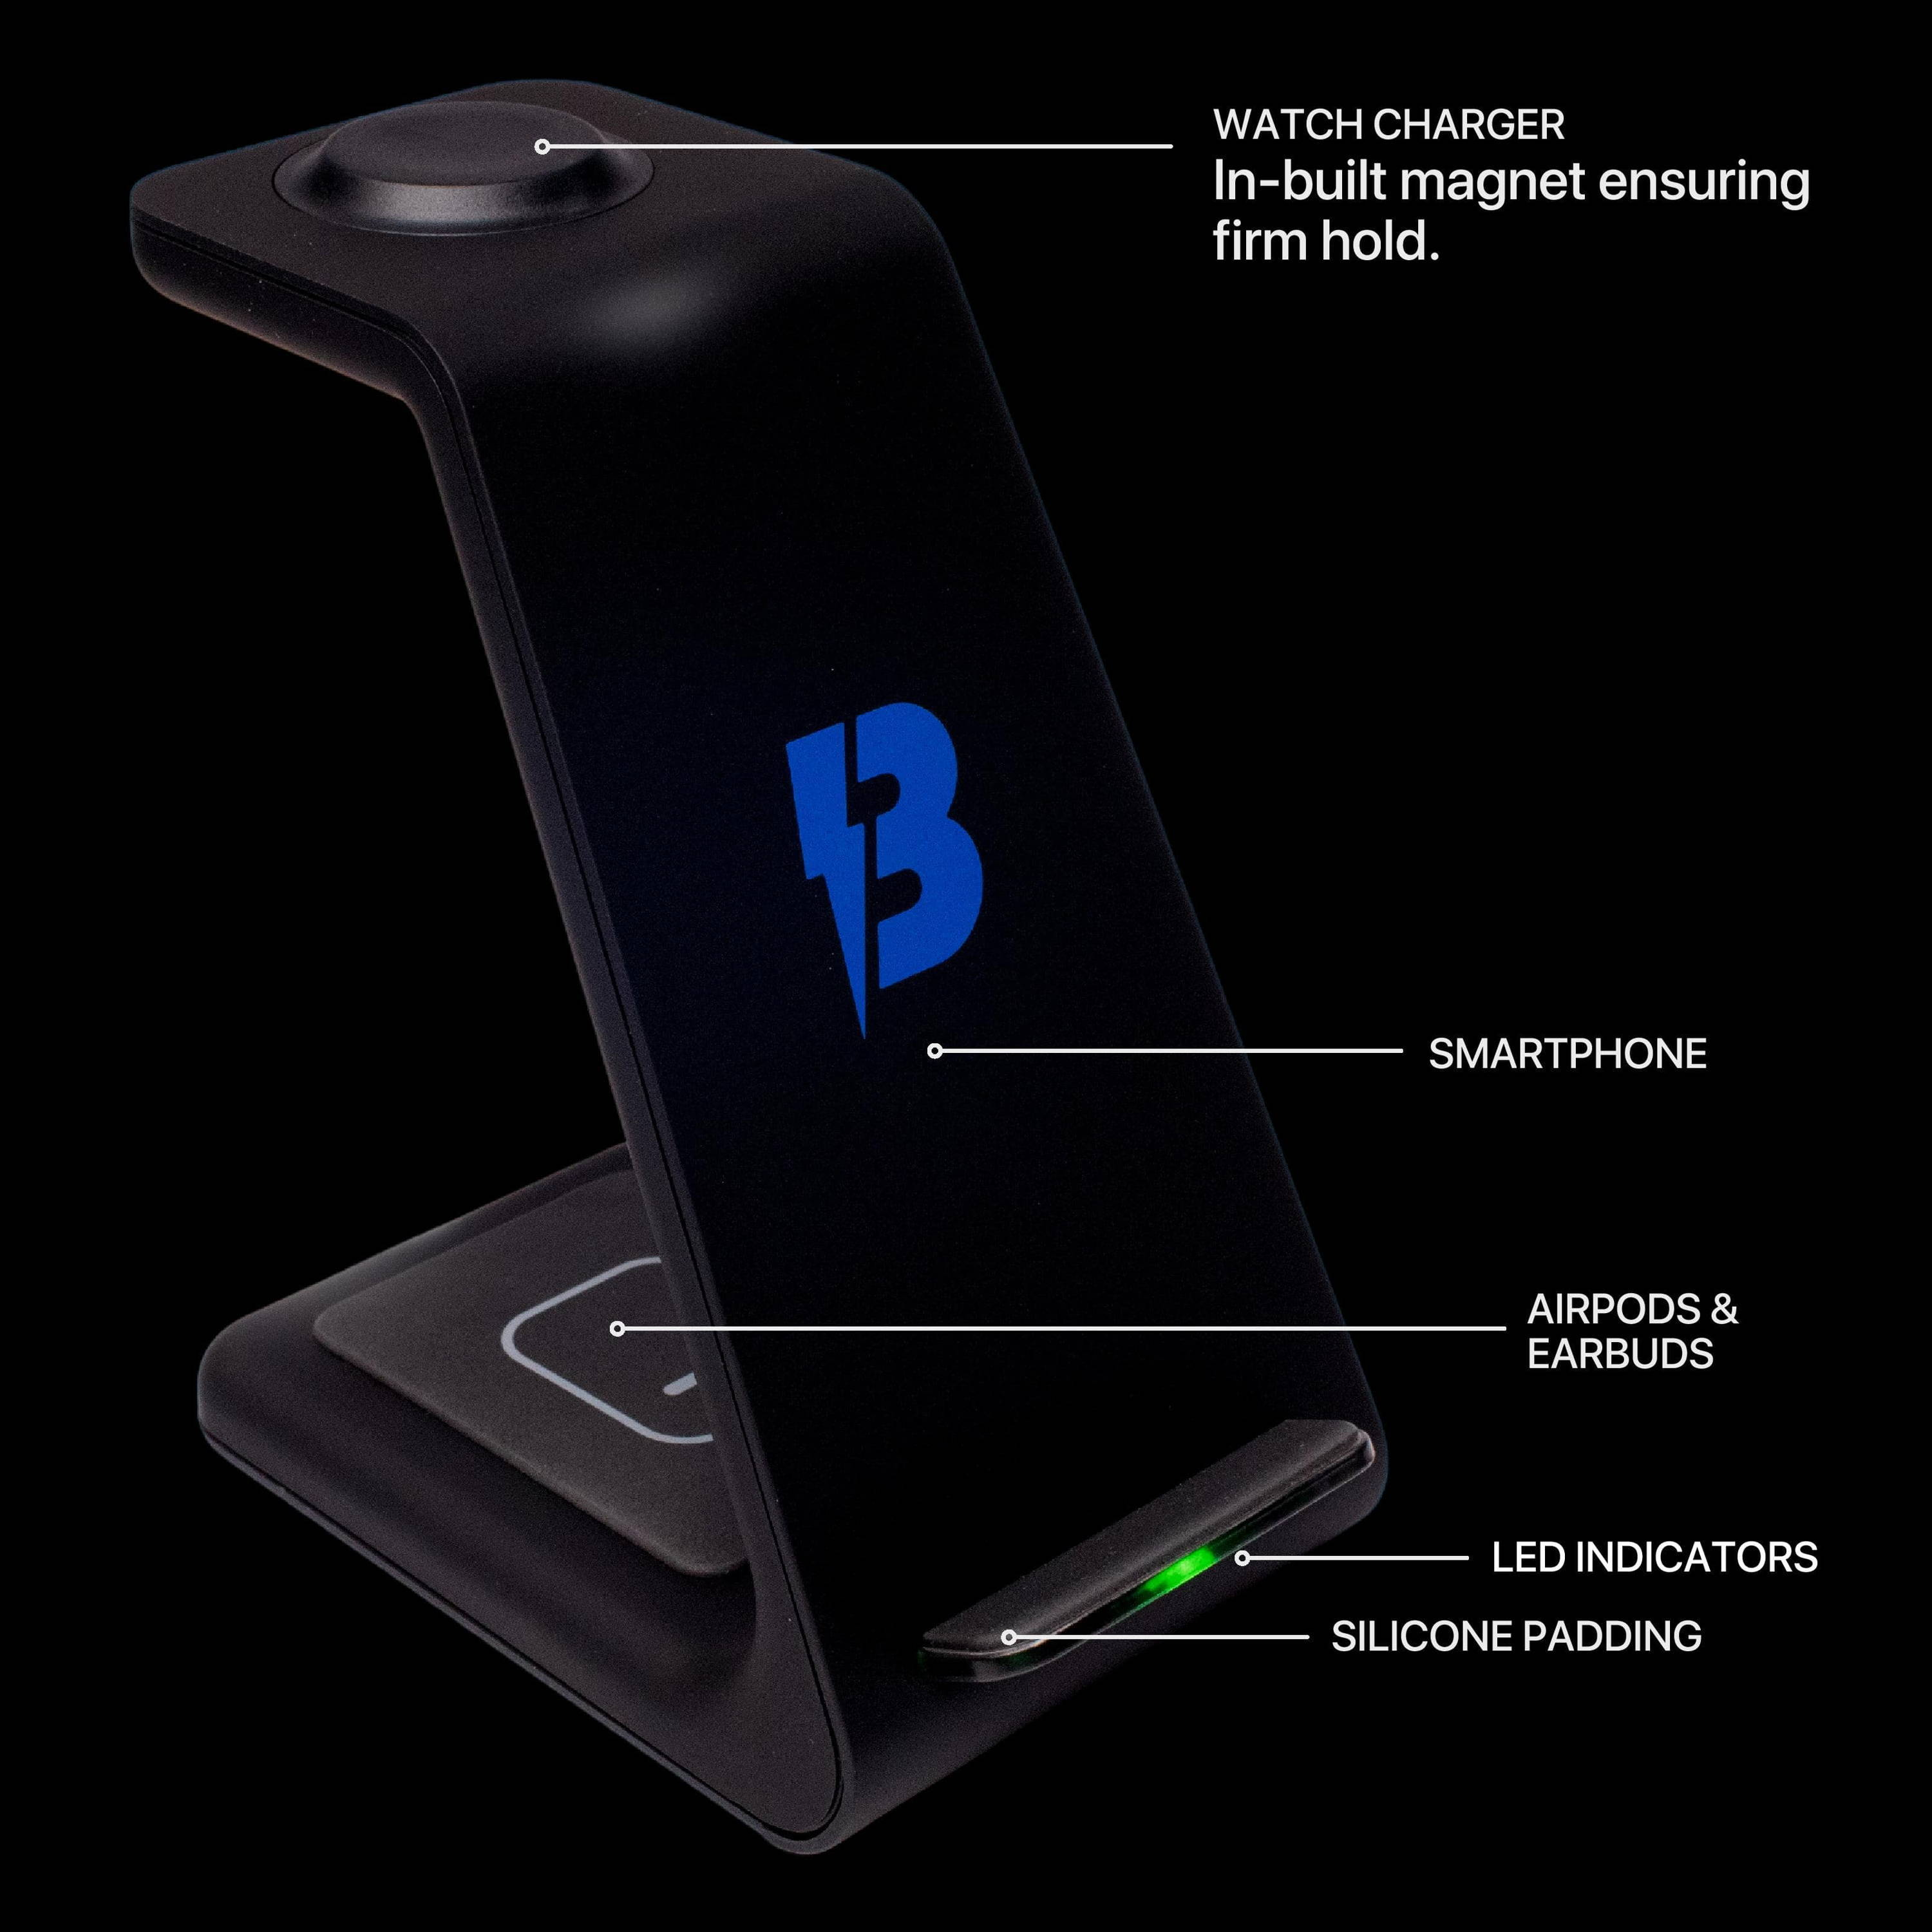 bolthome 3 in 1 charging station diagram showing features